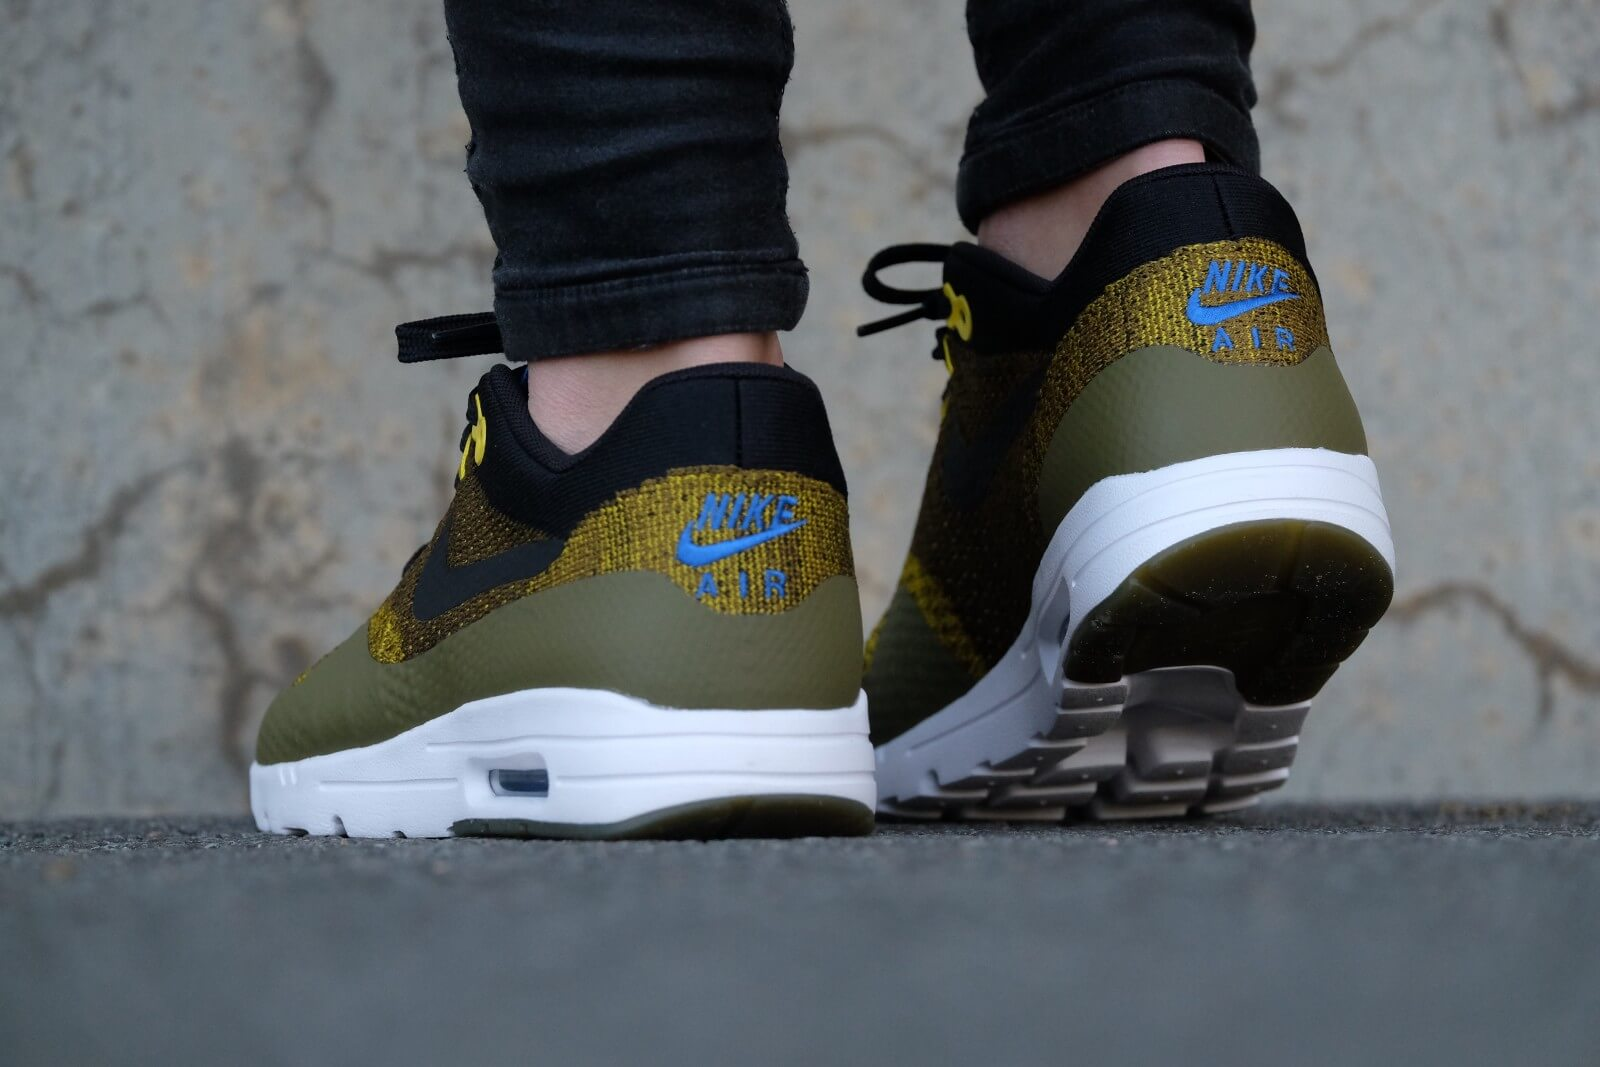 nike wmns air max 1 ultra flyknit olive flak game royal 843387 302. Black Bedroom Furniture Sets. Home Design Ideas